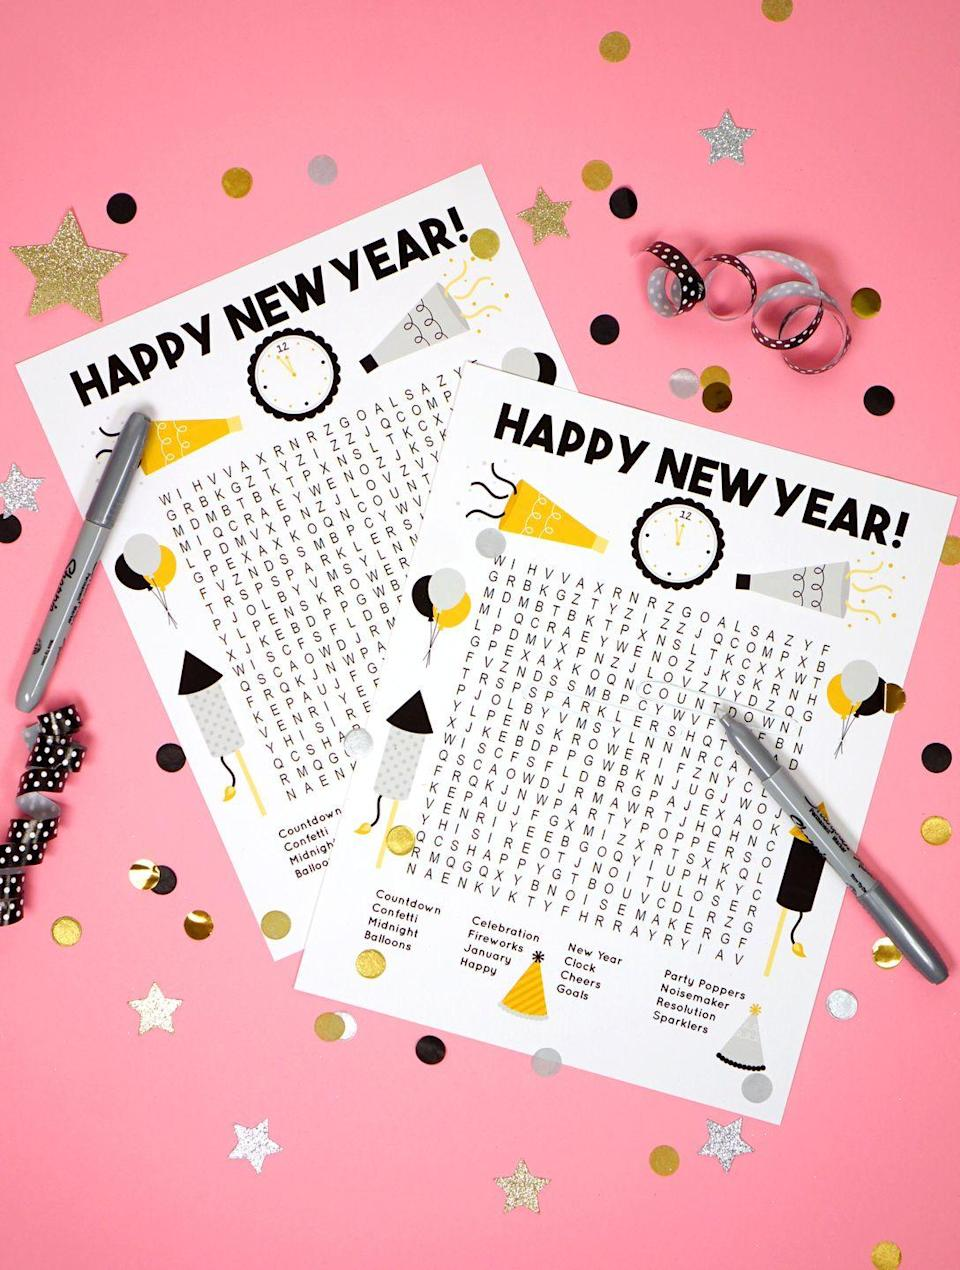 "<p>Get the kiddos in on the holiday fun with this New Year's printable word search. Just print as many as you need and let them seek and find 16 words and phrases related to the holiday.</p><p><em><a href=""https://www.happinessishomemade.net/new-years-word-search-printable/"" rel=""nofollow noopener"" target=""_blank"" data-ylk=""slk:Get the printable at Happiness Is Homemade»"" class=""link rapid-noclick-resp"">Get the printable at Happiness Is Homemade»</a></em><br></p>"